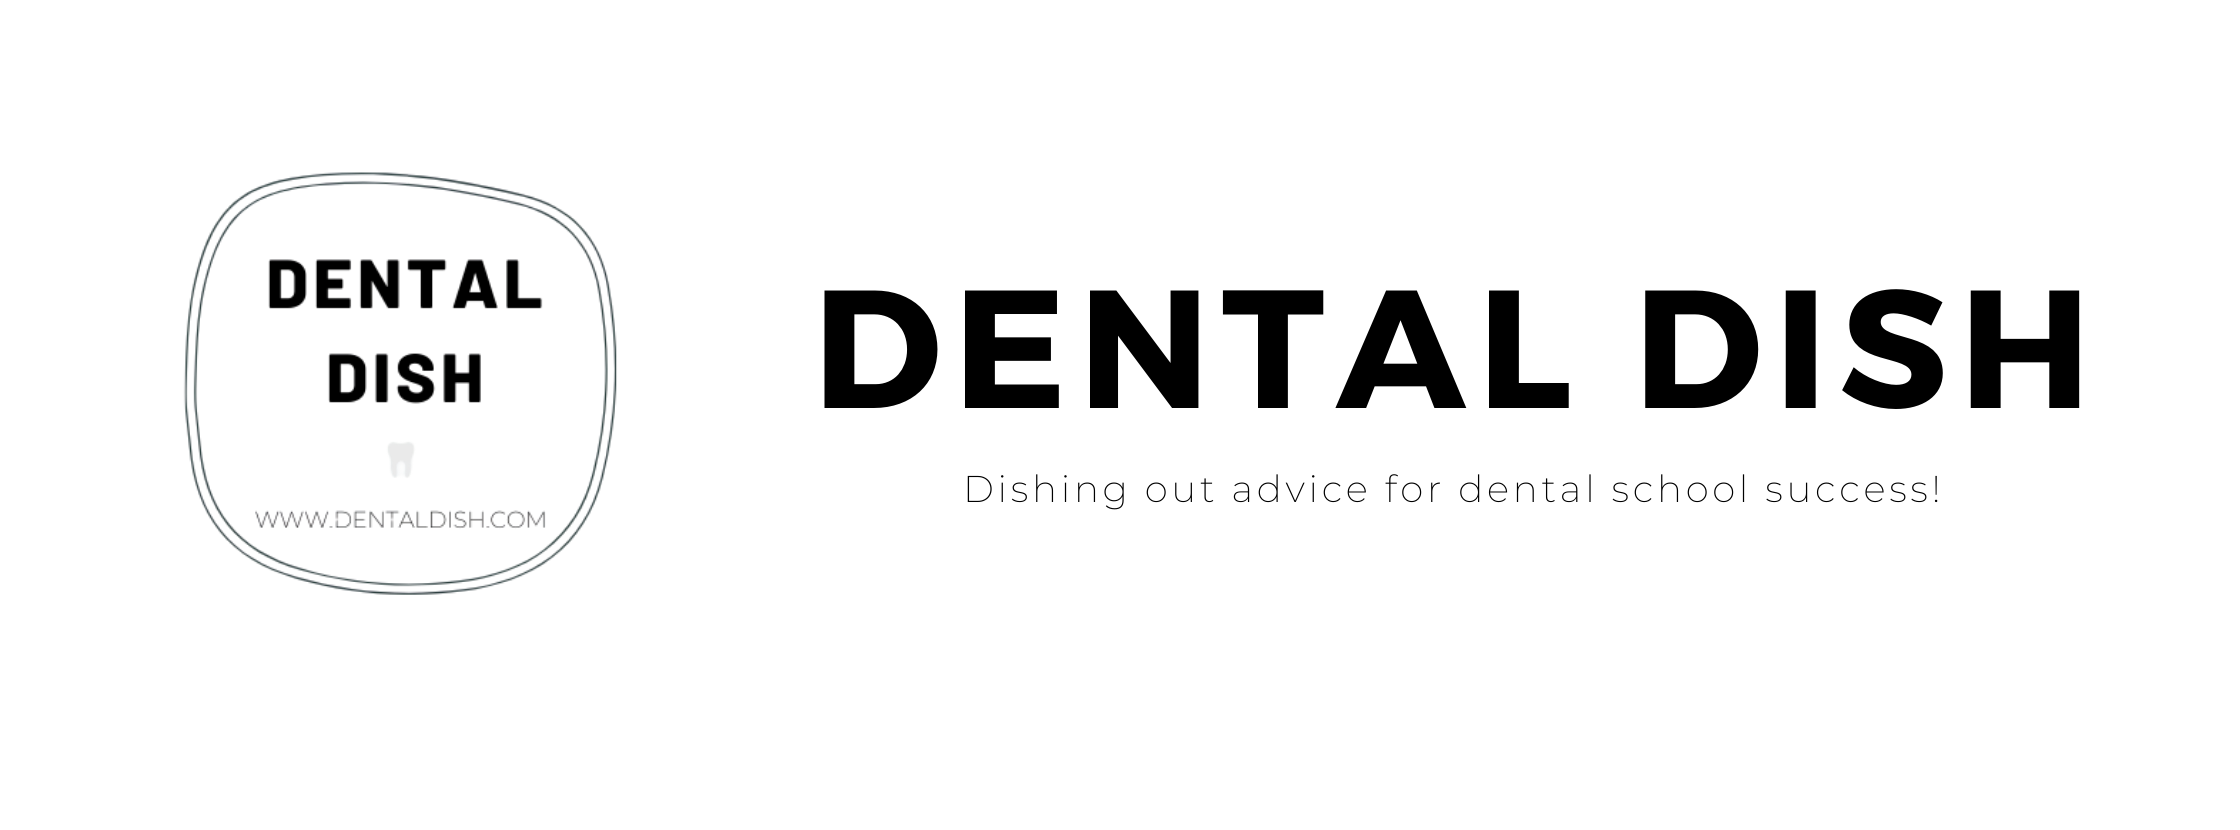 Dental Dish